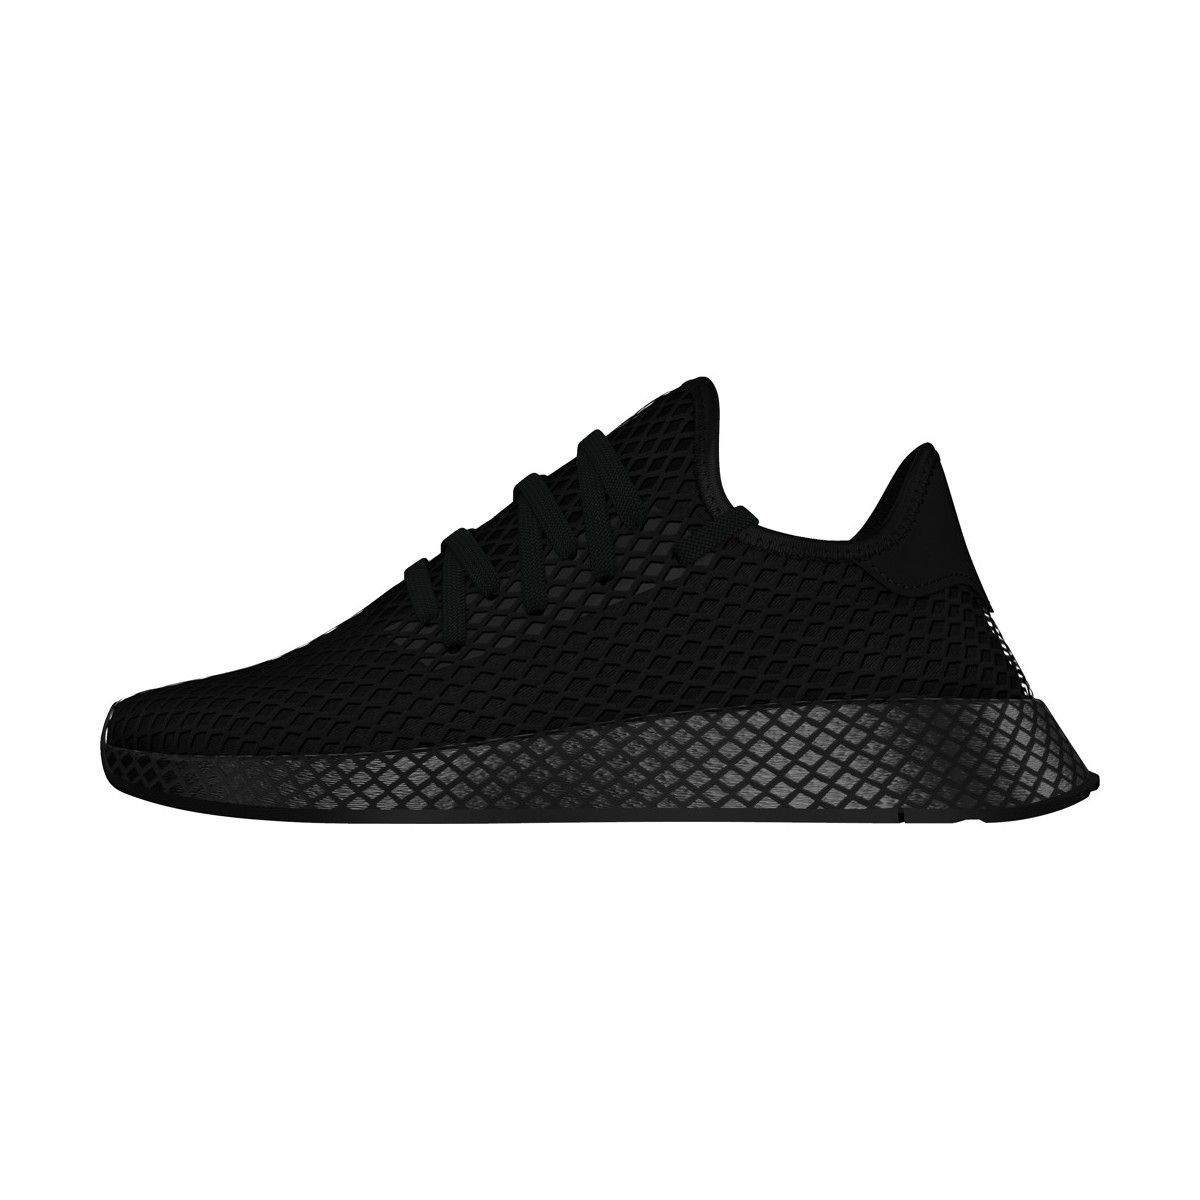 Basket Adidas Originals Deerupt Runner - B41768 - Taille : 43